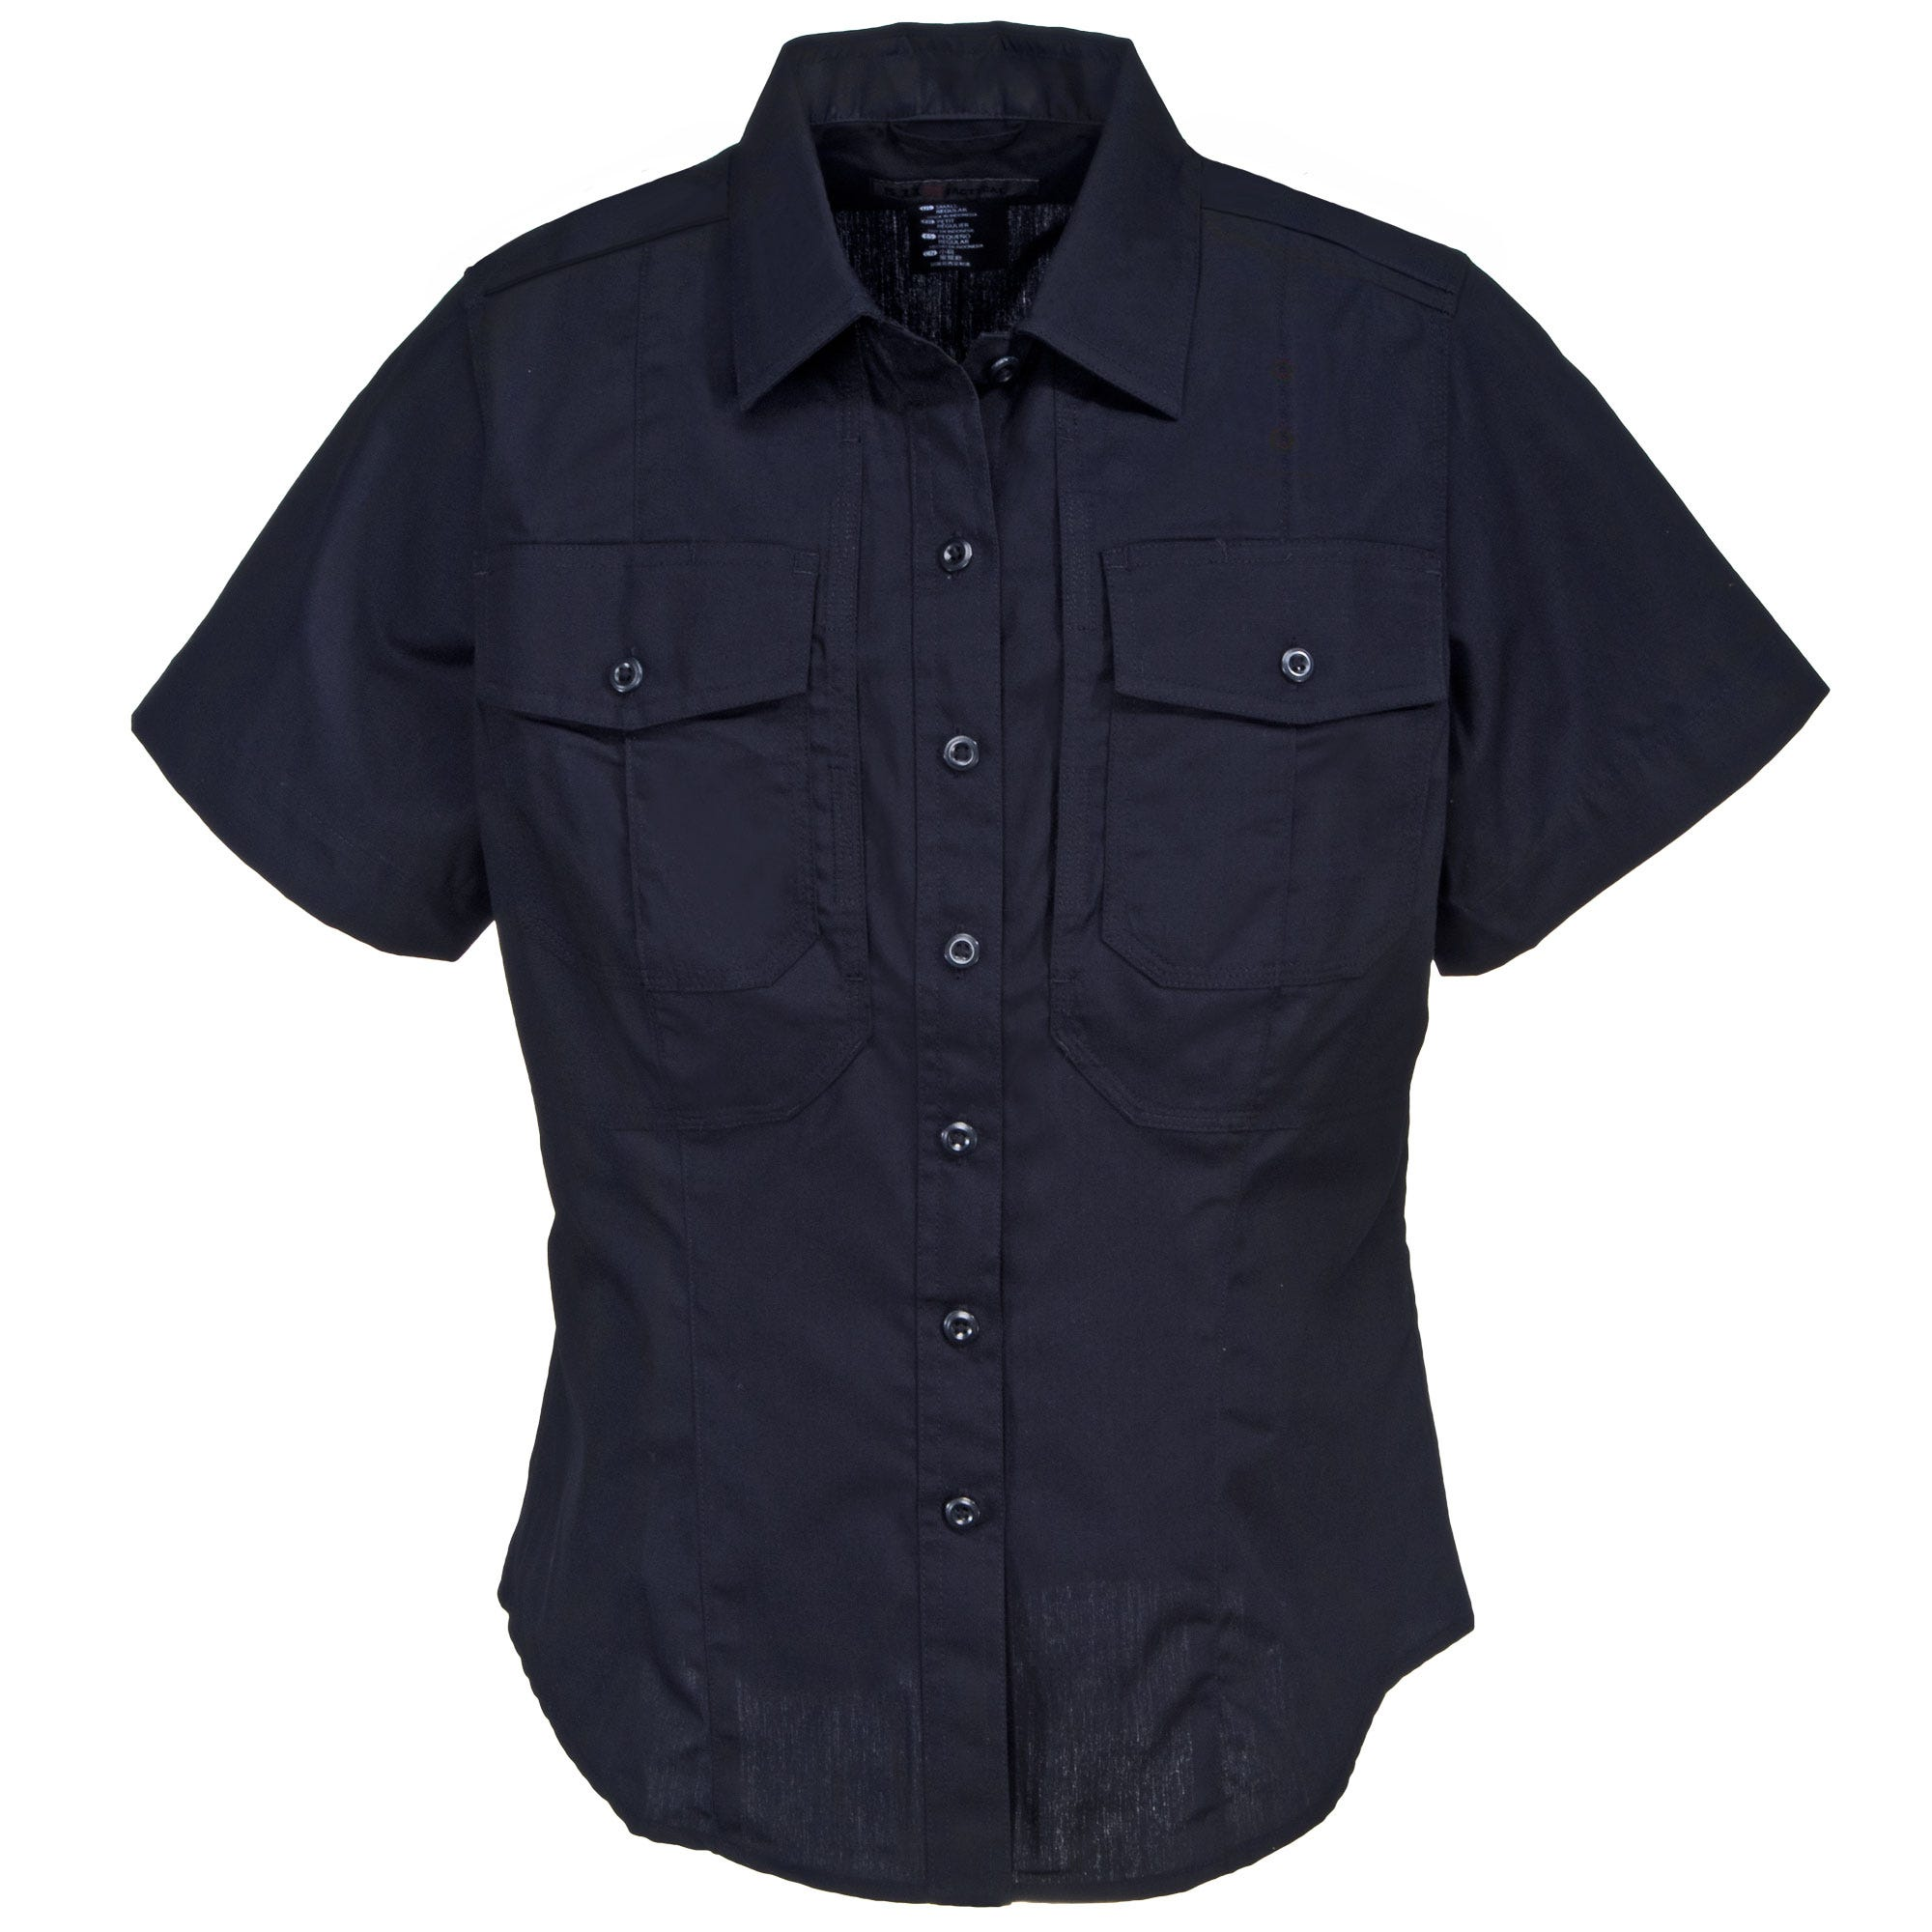 5.11 Tactical Women's 61018 750 Navy PDU Class B Short Sleeve Shirt